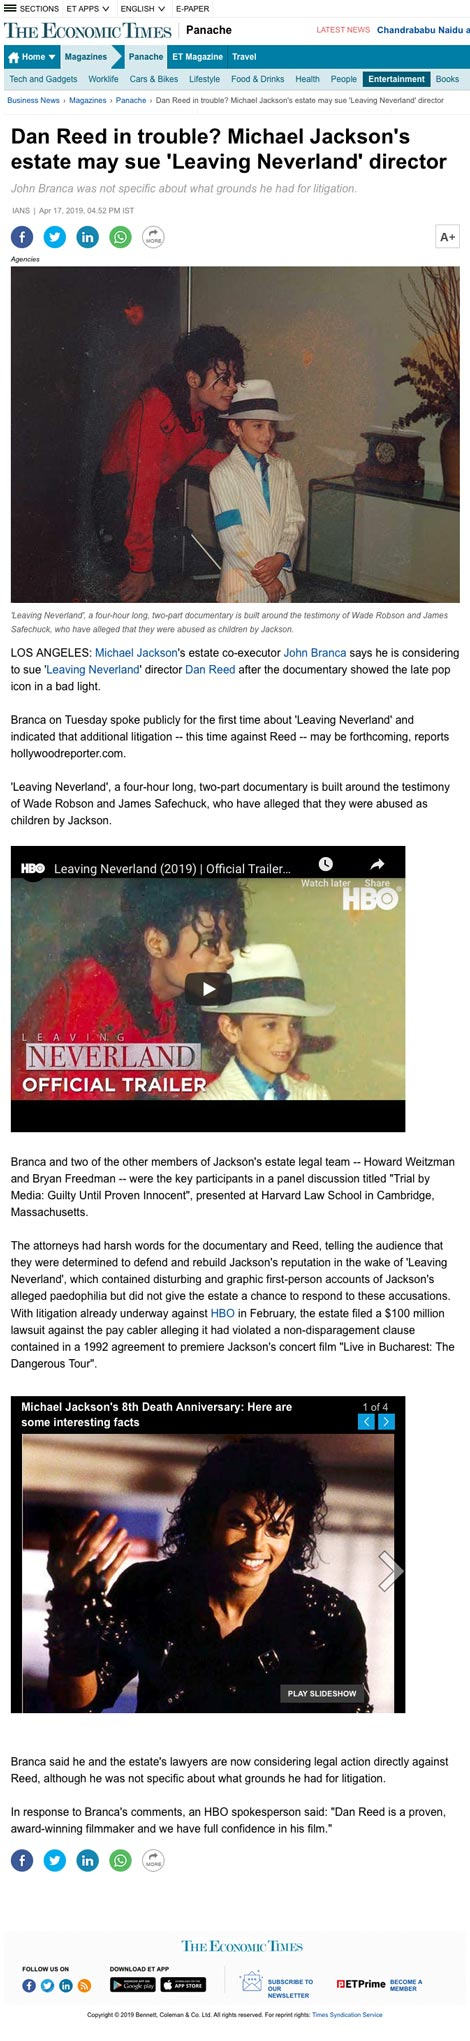 Dan Reed in trouble? Michael Jackson's estate may sue 'Leaving Neverland' director - article by The Economic Times